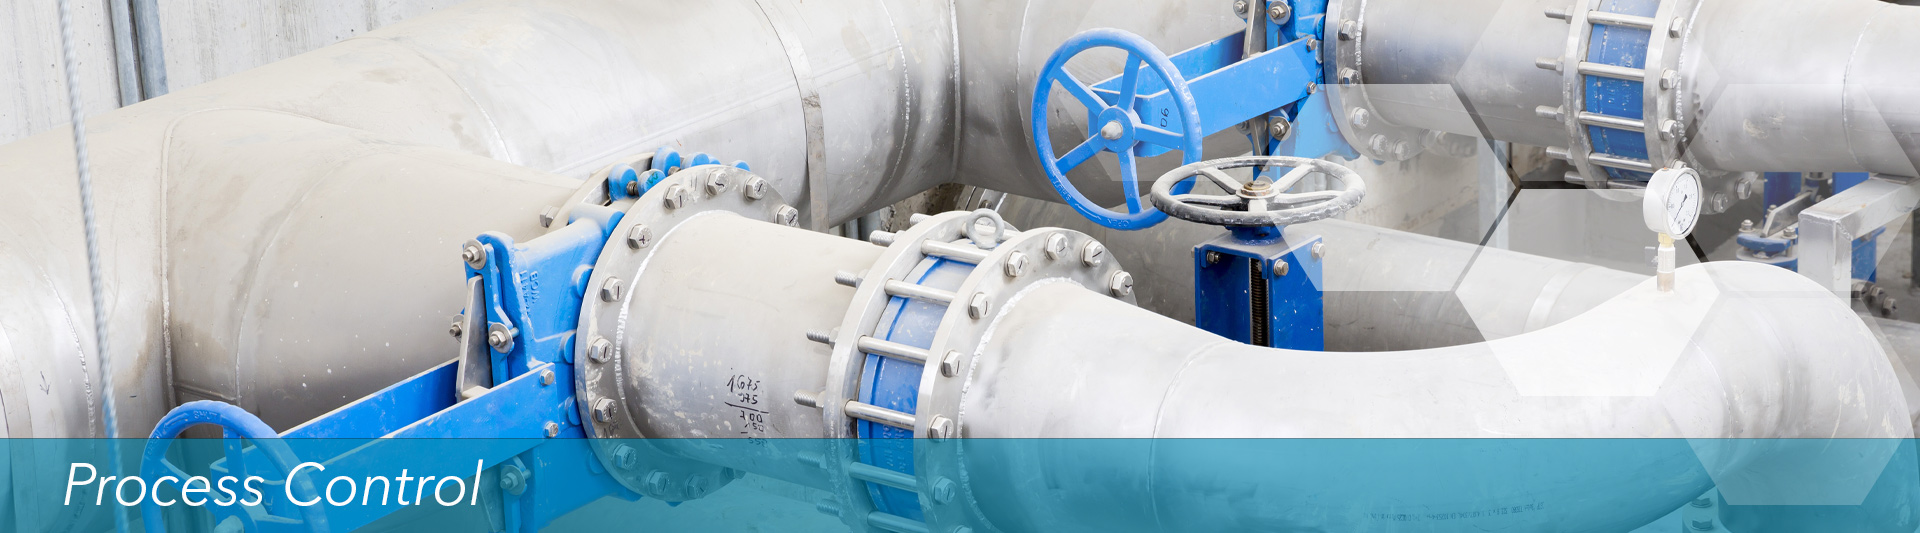 Wastewater Process Solutions from OI Analytical